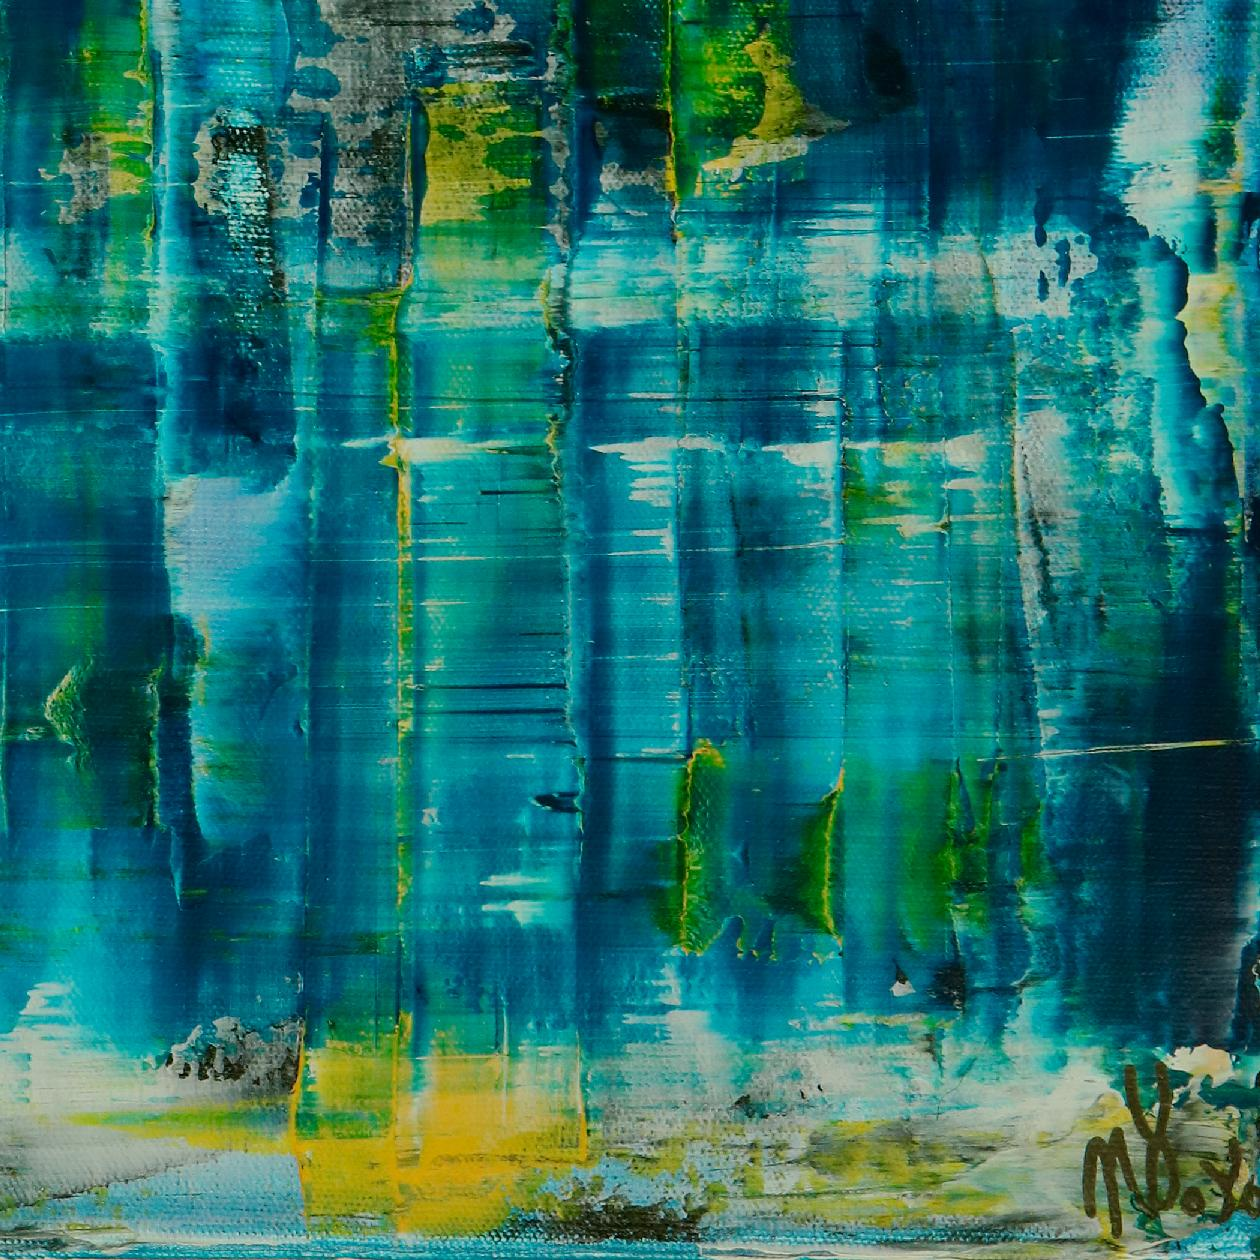 Signature detail - Emerald Forest Spectra 1 by Nestor Toro